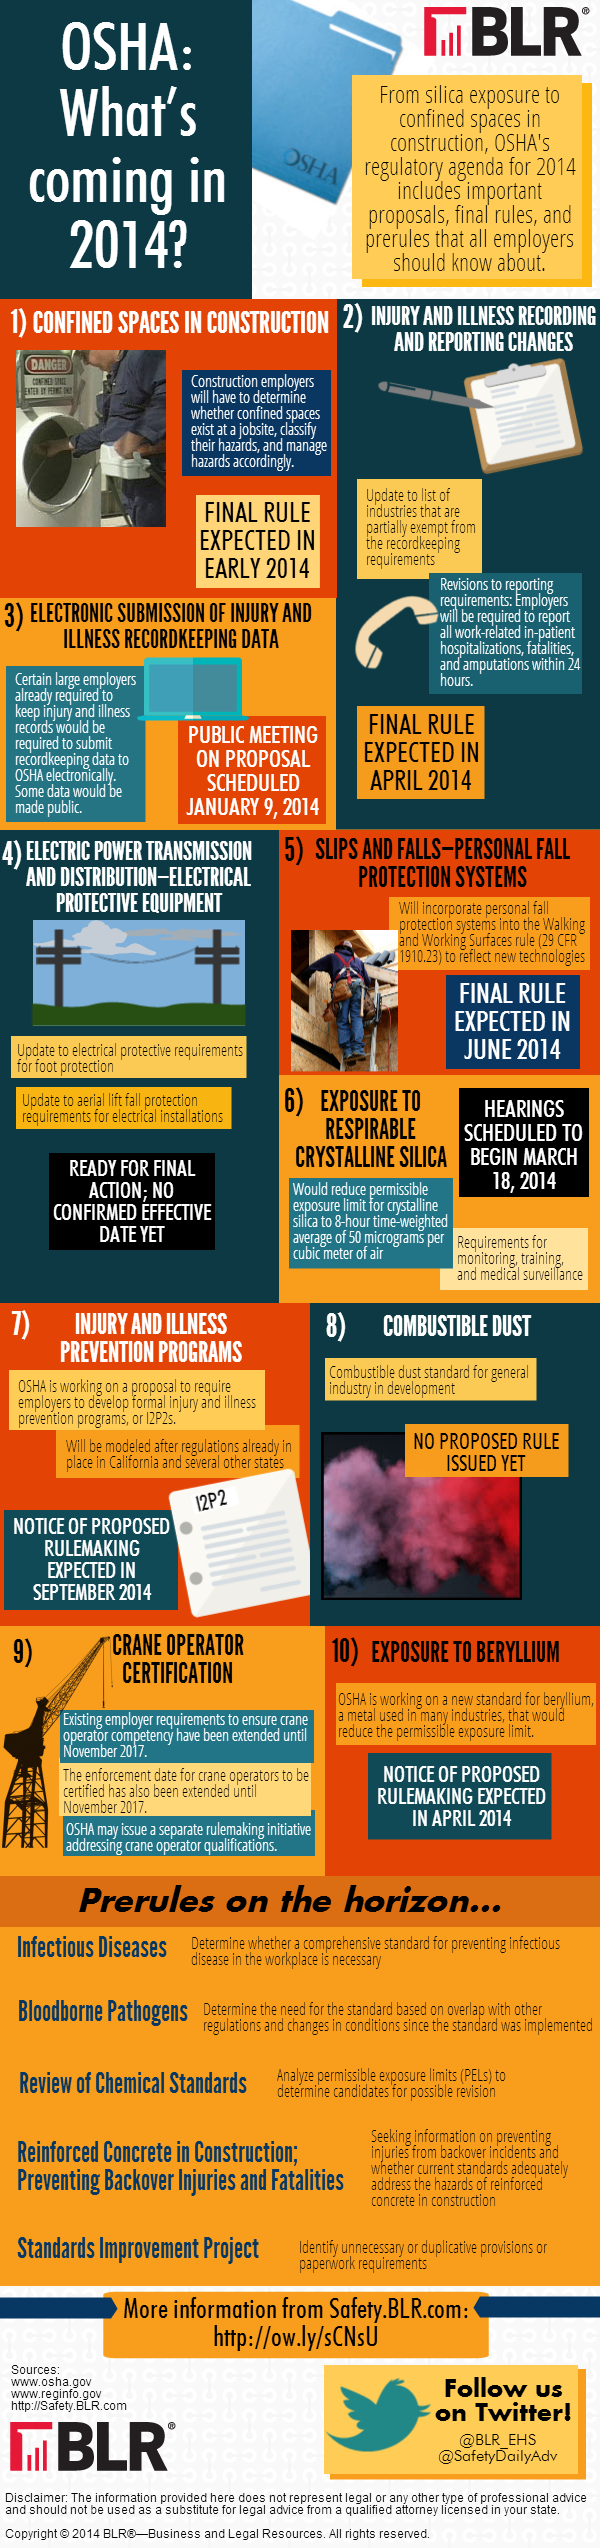 OSHA: What's coming in 2014?